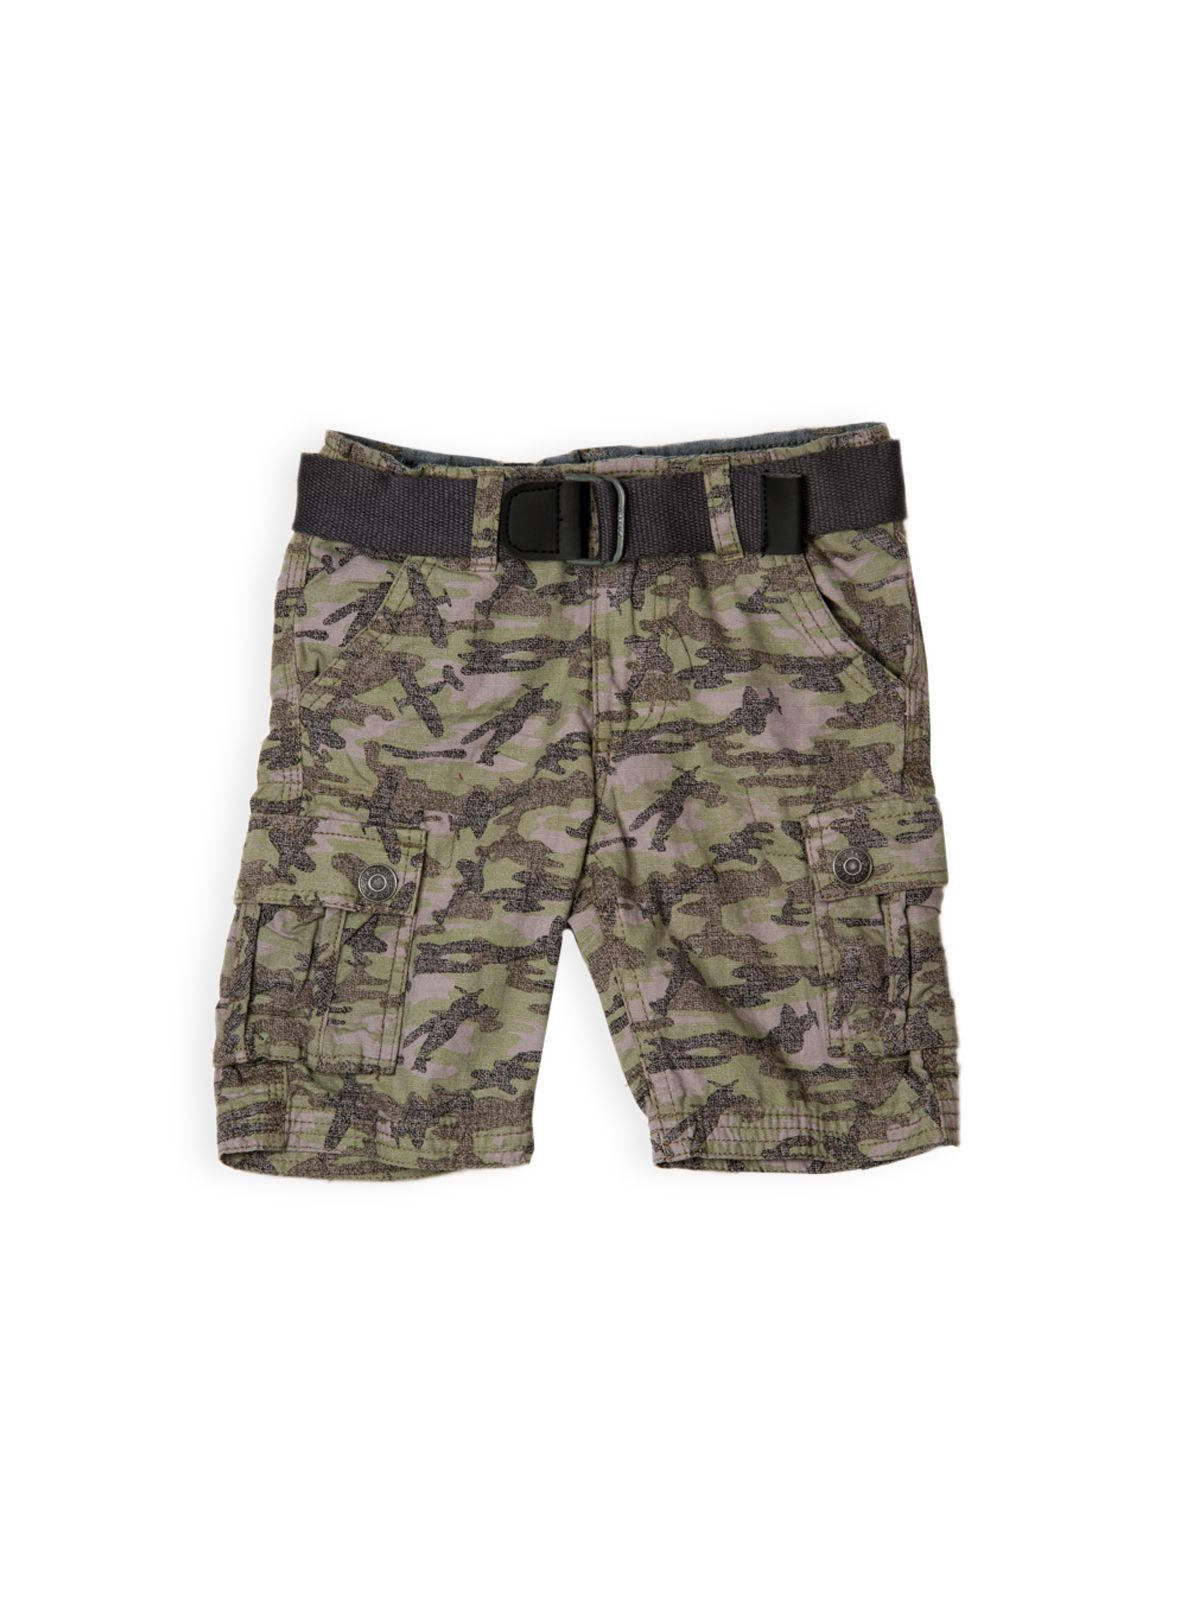 Boys w/s camo cargo short with belt